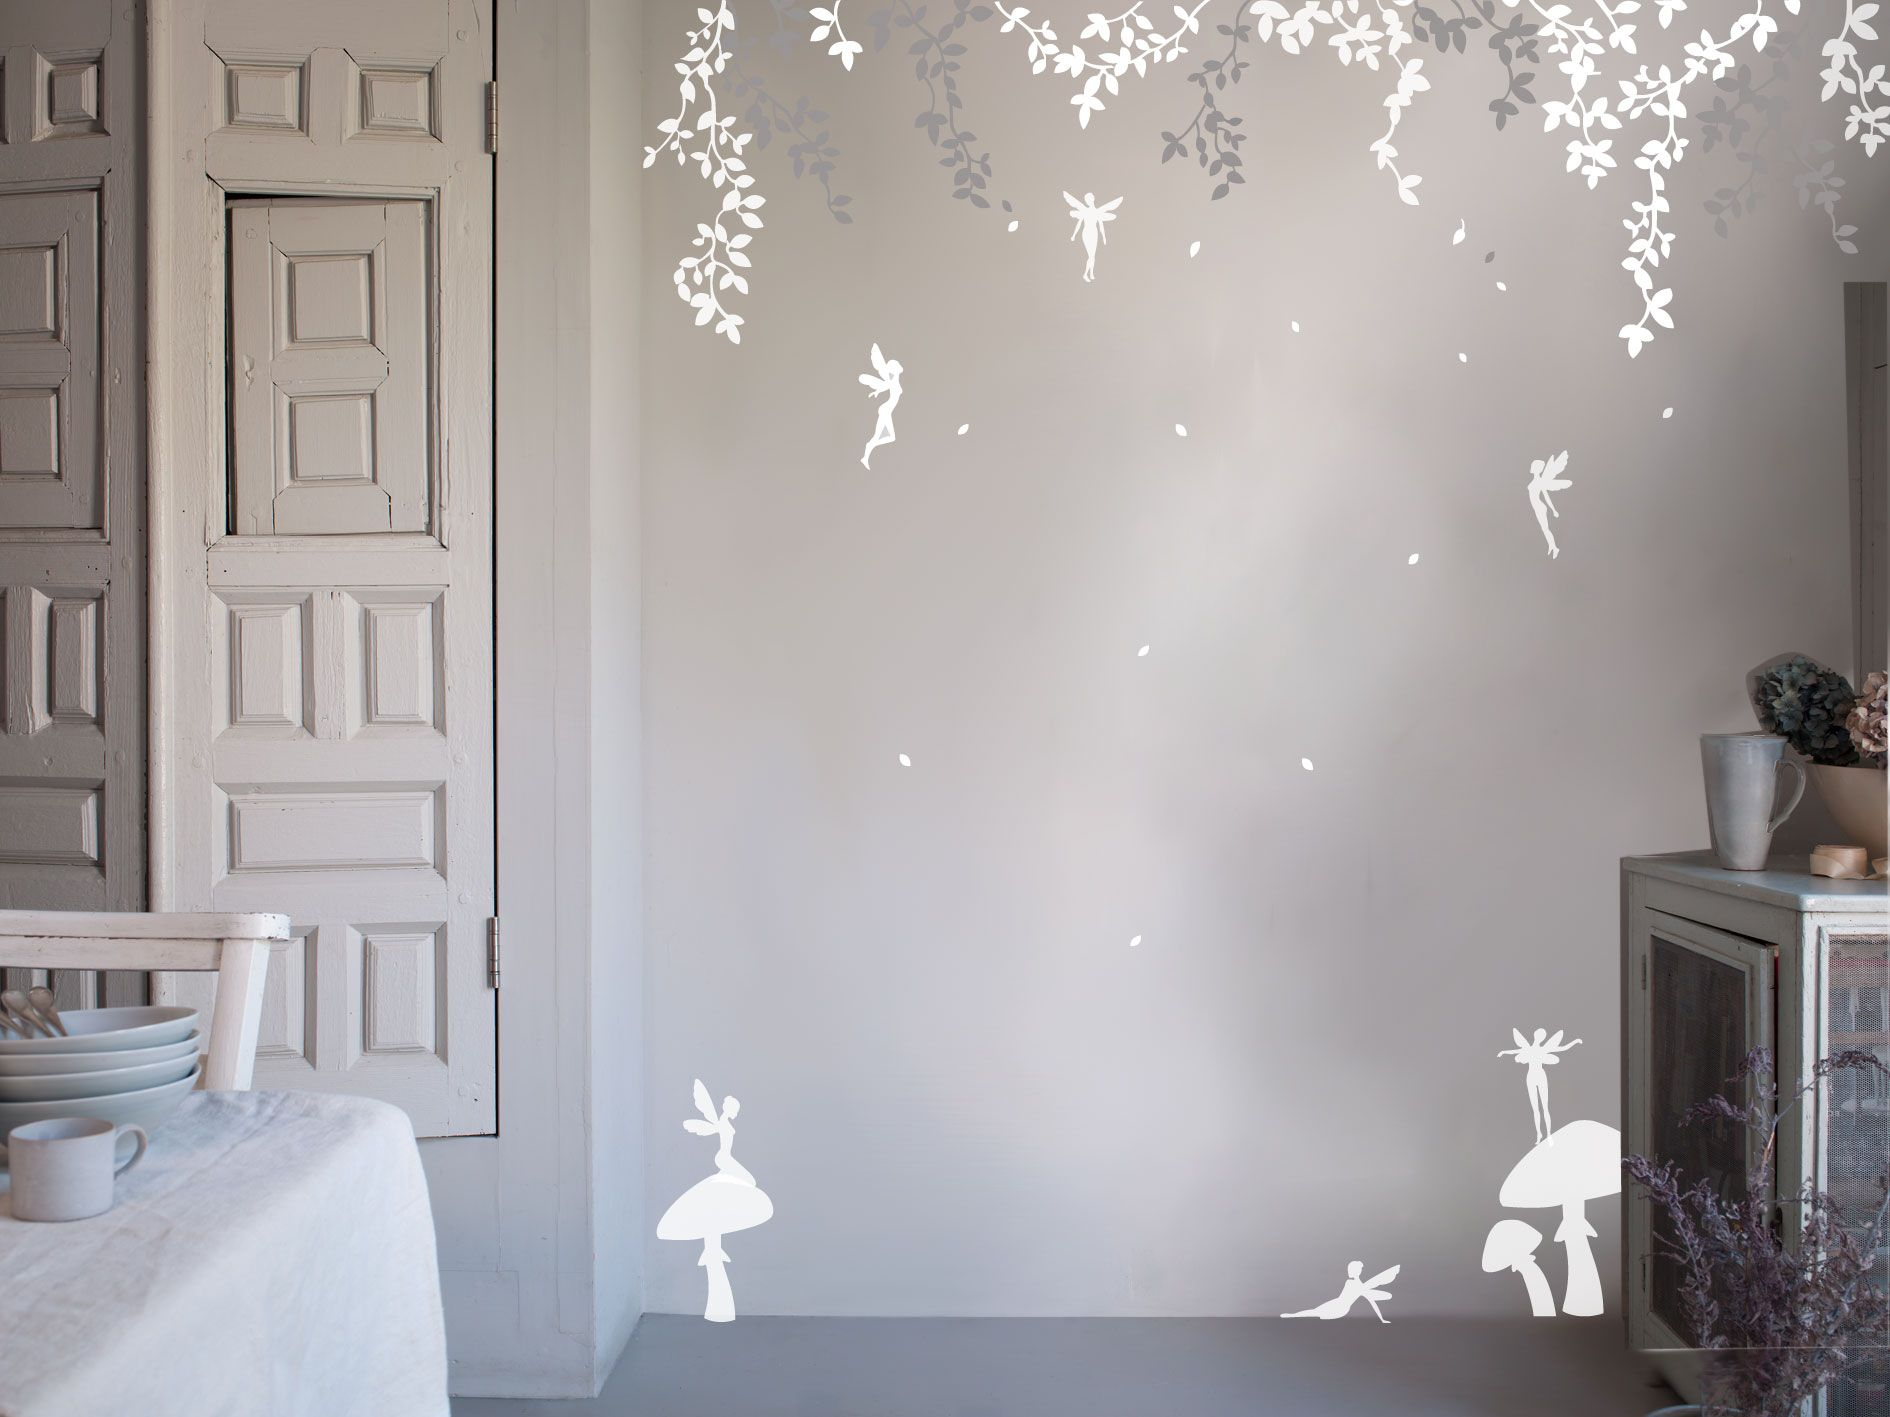 enchanted forest bedroom enchanted fairy forest wall sticker enchanted forest bedroom enchanted fairy forest wall sticker white grey from bambizi